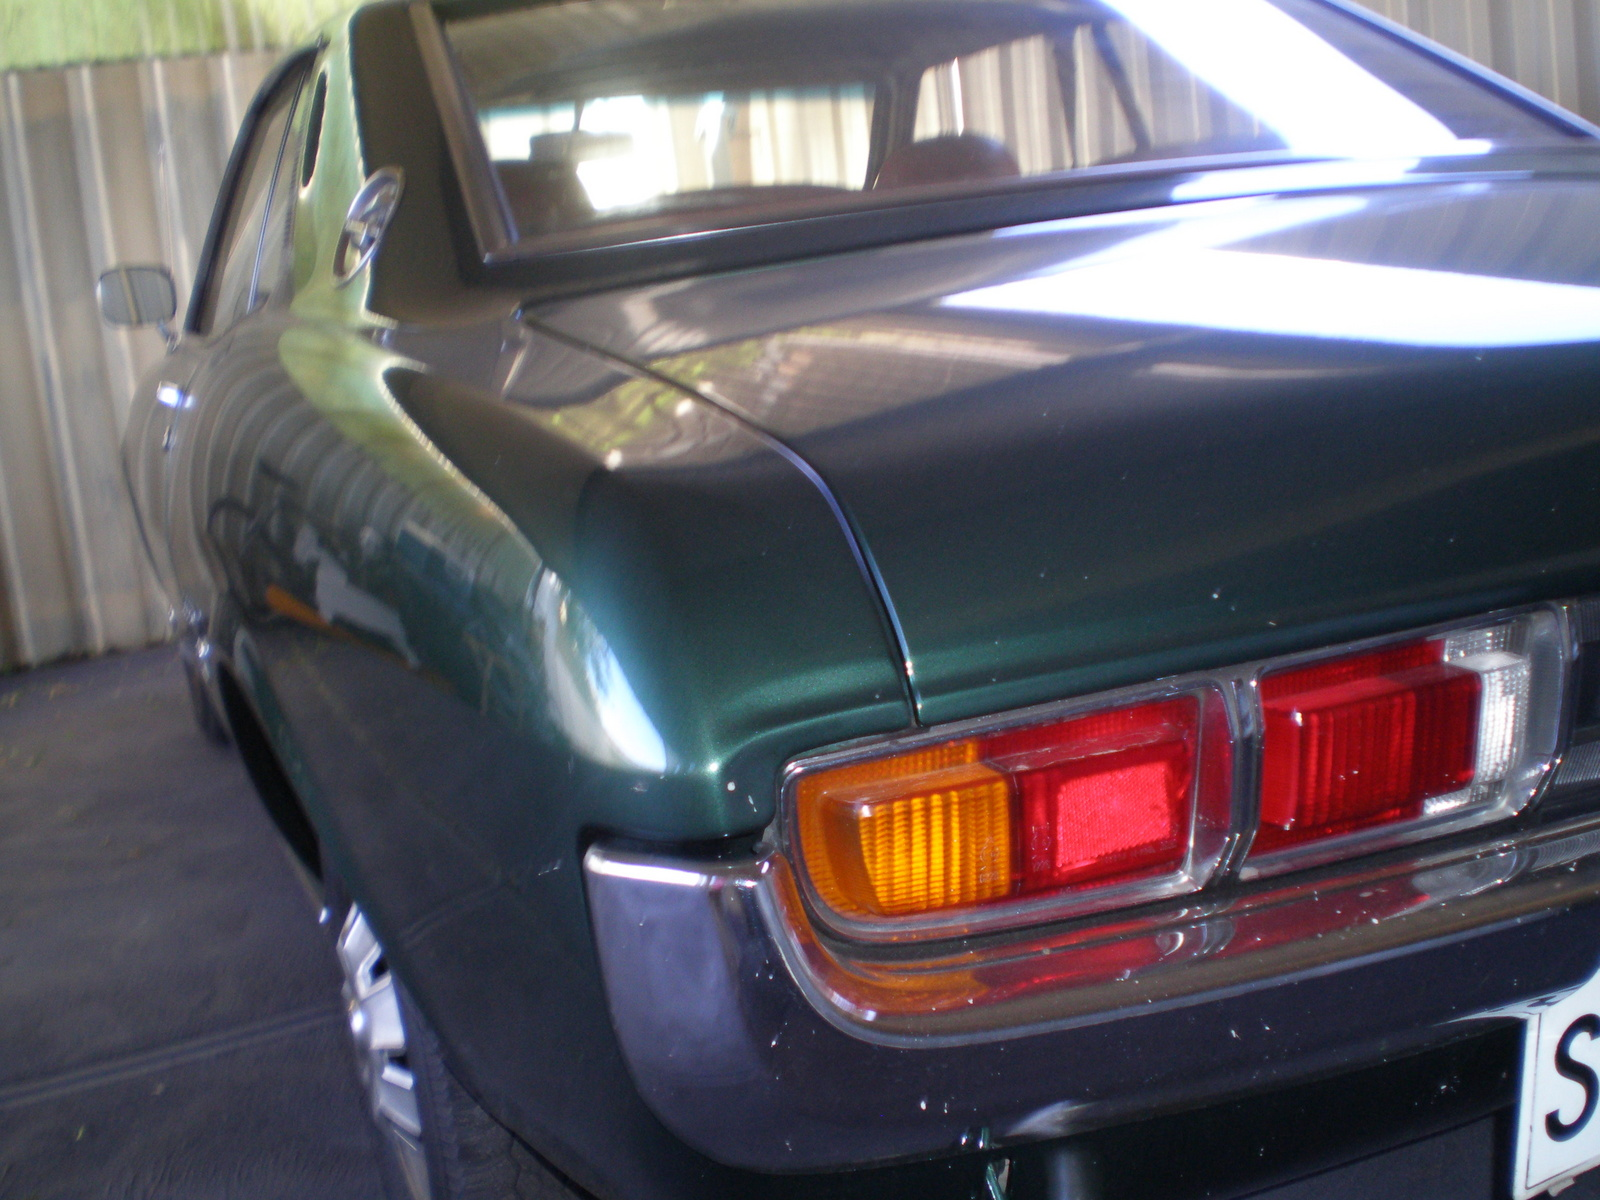 Picture of 1975 Toyota Celica ST coupe, exterior